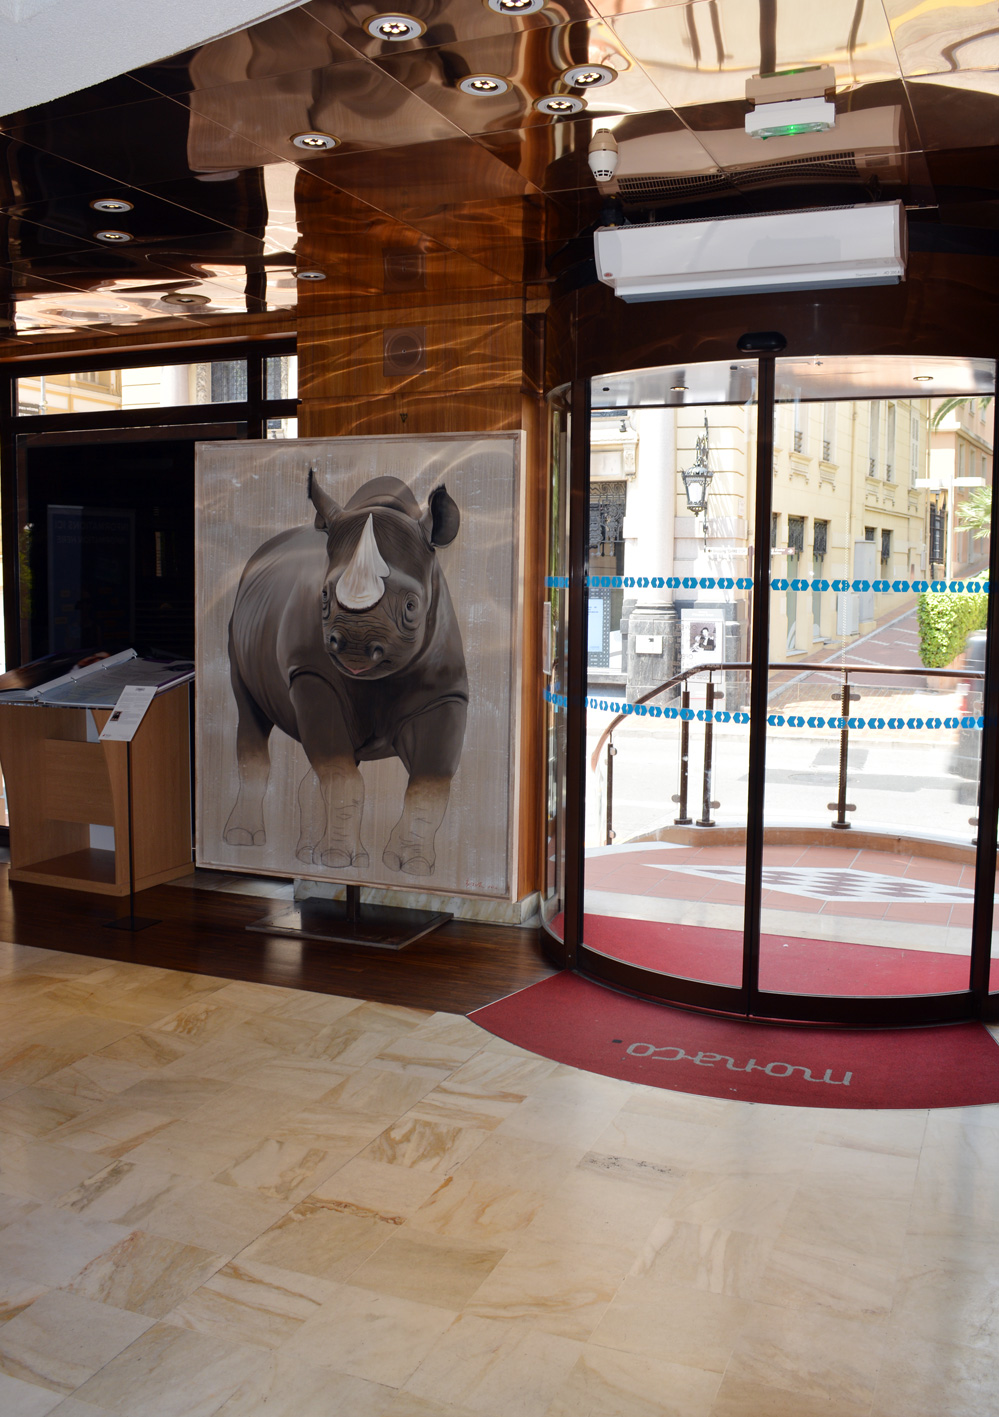 Office de tourisme monaco rhinoceros black rhino diceros bicornis threatened endangered - Office de tourisme de monaco ...